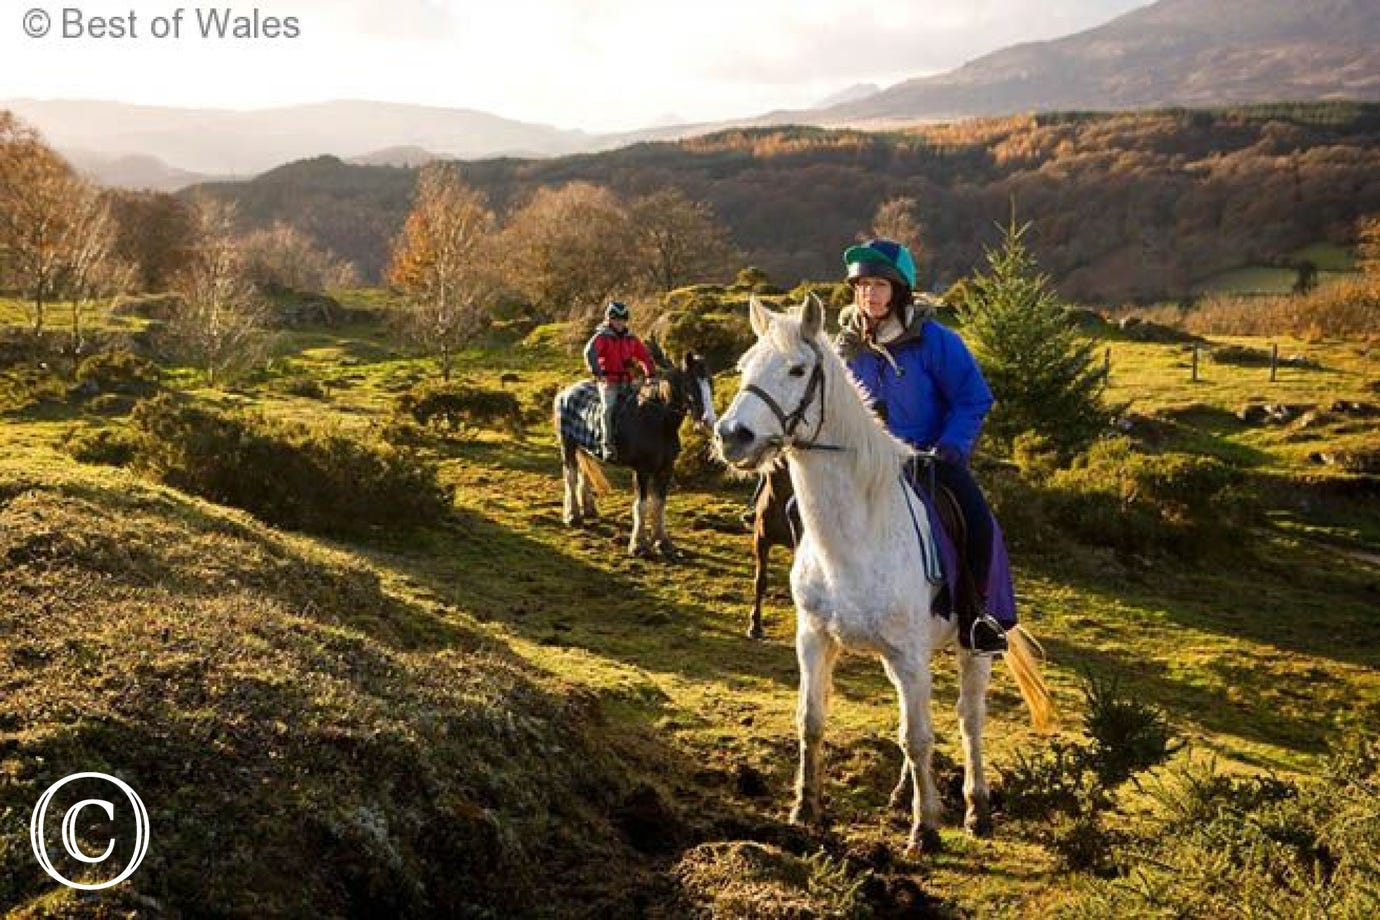 Horse riding available locally at Gwydyr Stables, Penmachno (2 miles)